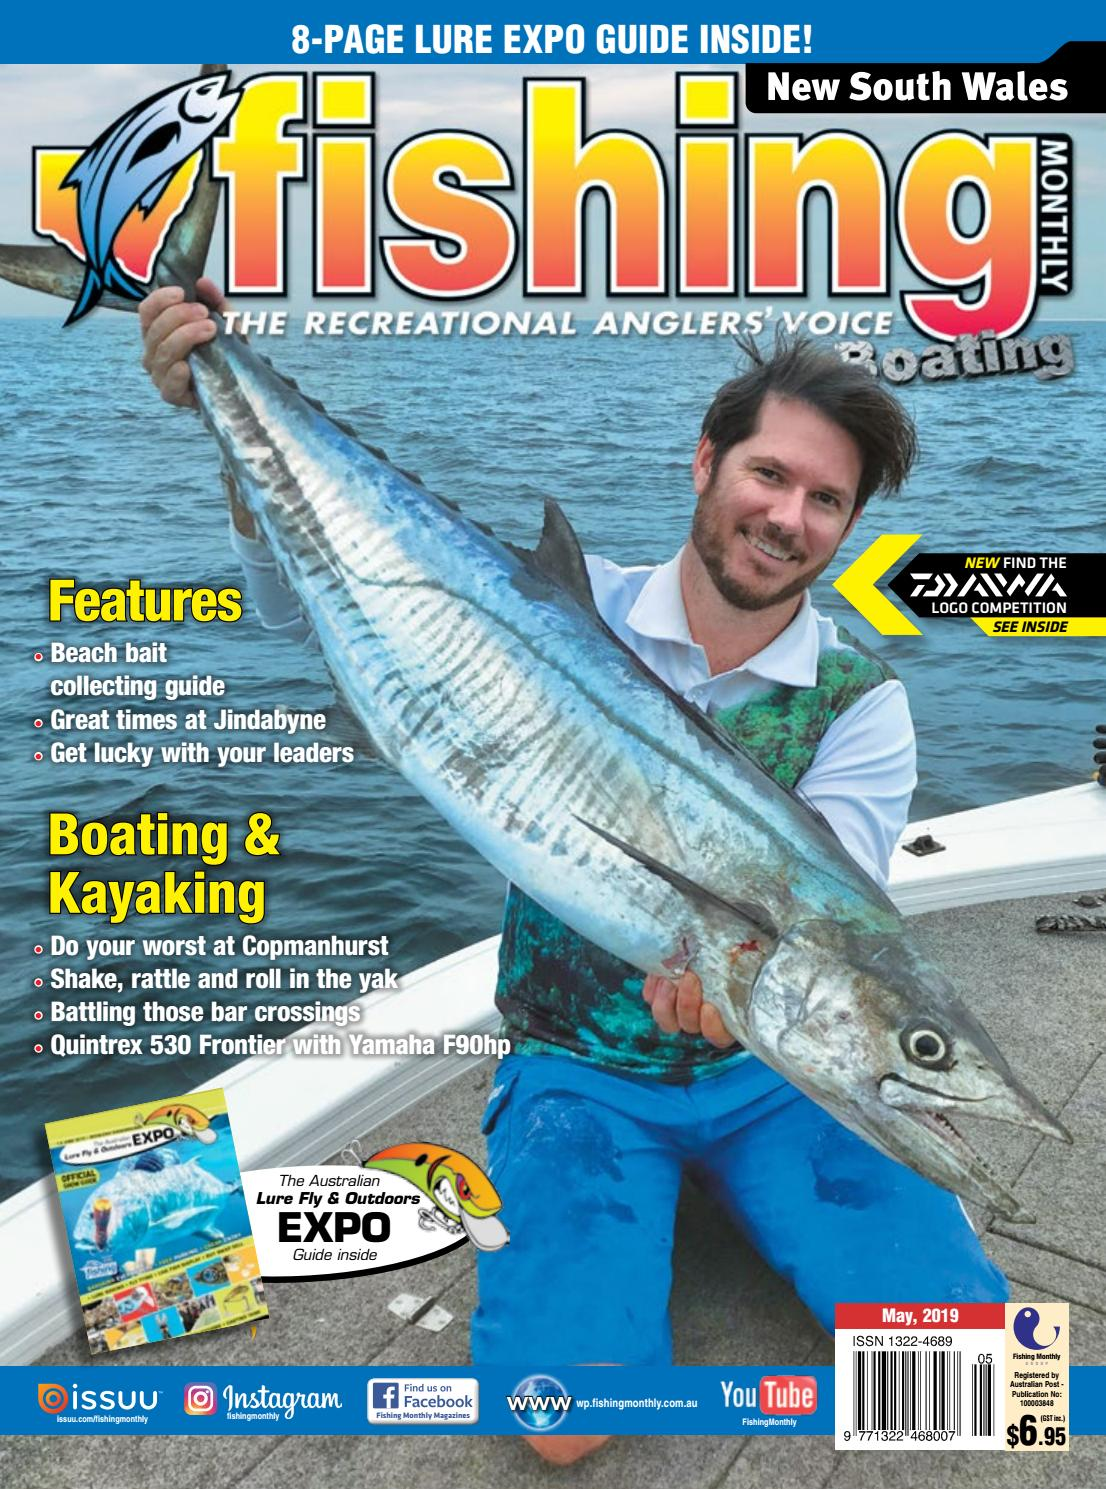 New South Wales Fishing Monthly May 2019 by Fishing Monthly - issuu